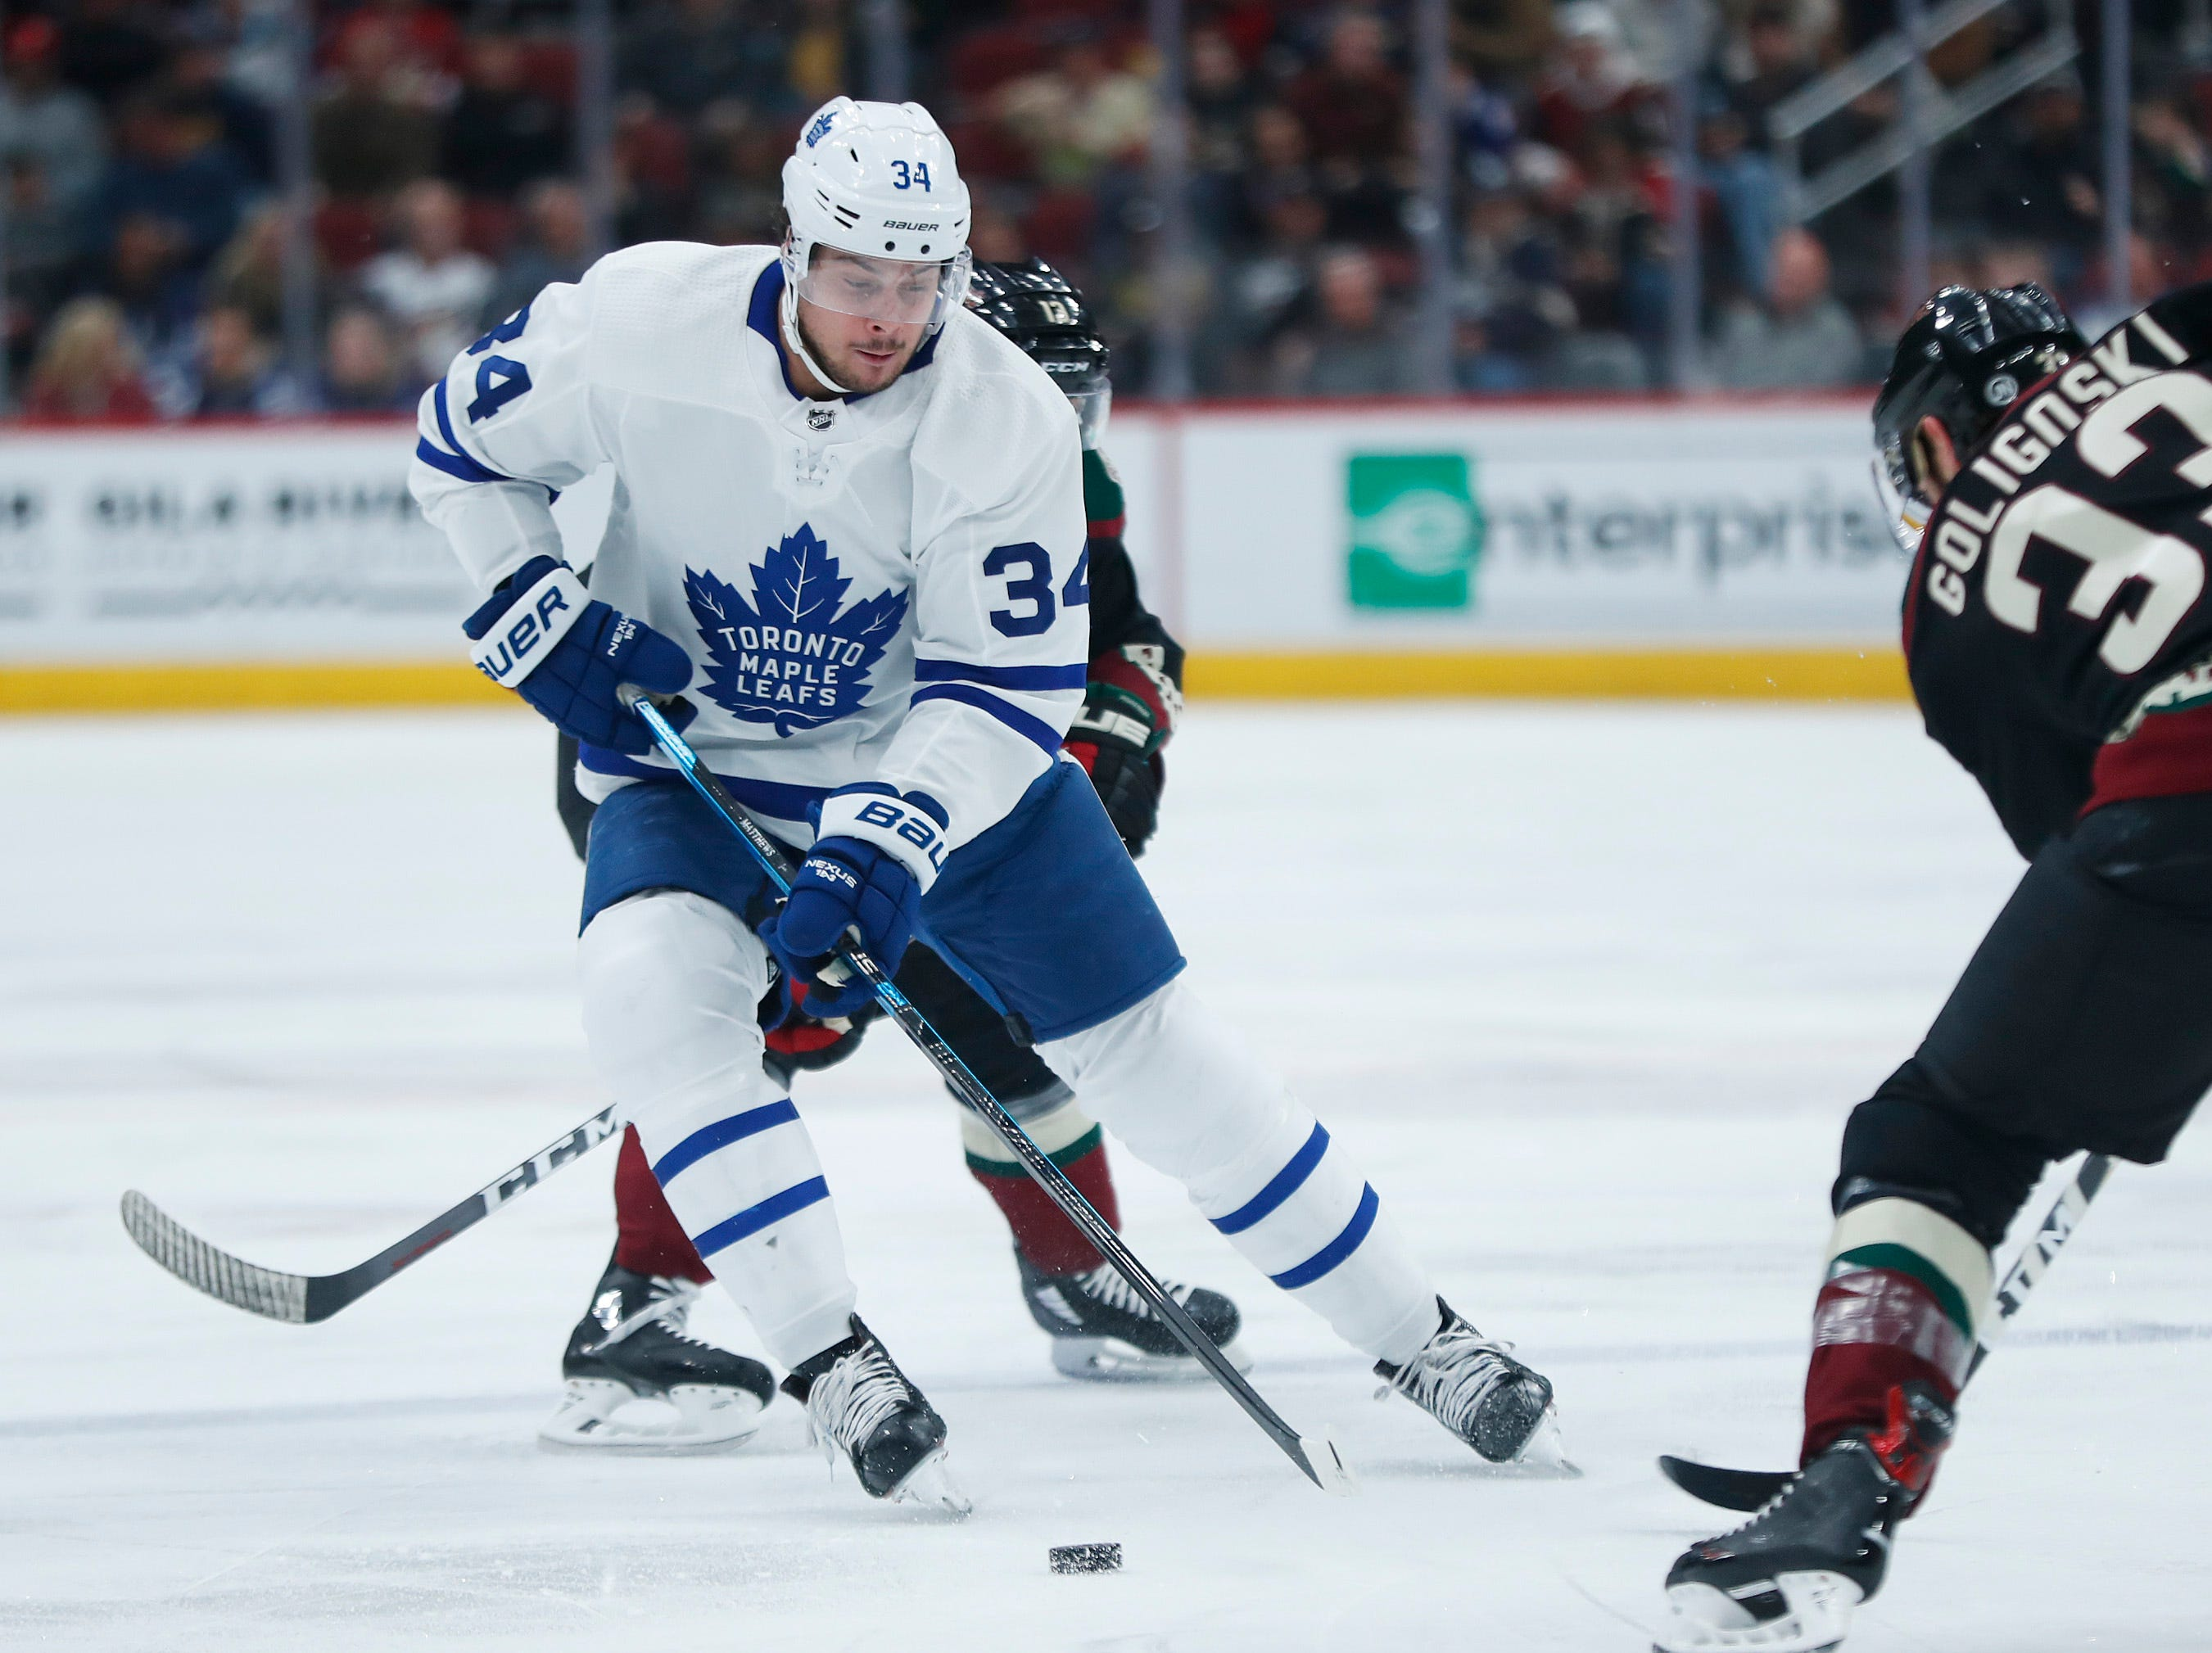 Maple Leafs' Auston Matthews (34) skates up against Coyotes' Alex Goligoski (33) during the first period at Gila River Arena in Glendale, Ariz. on February 16, 2019.